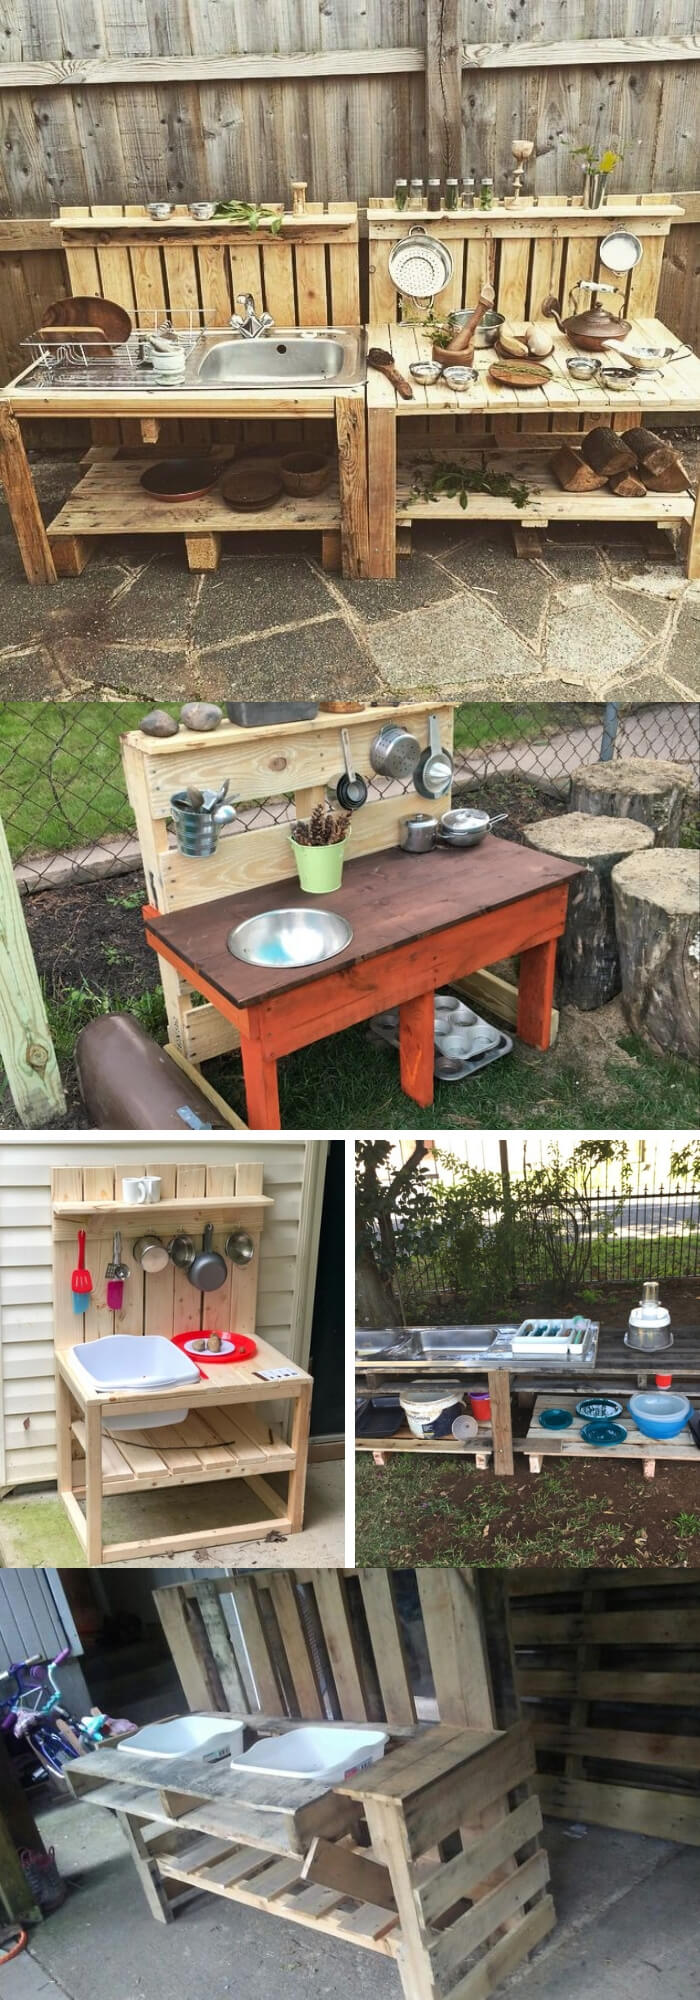 Mud Kitchens from Pallet Wood | DIY Outdoor Kitchen Ideas (Cheap, Simple, Modern, and Country)